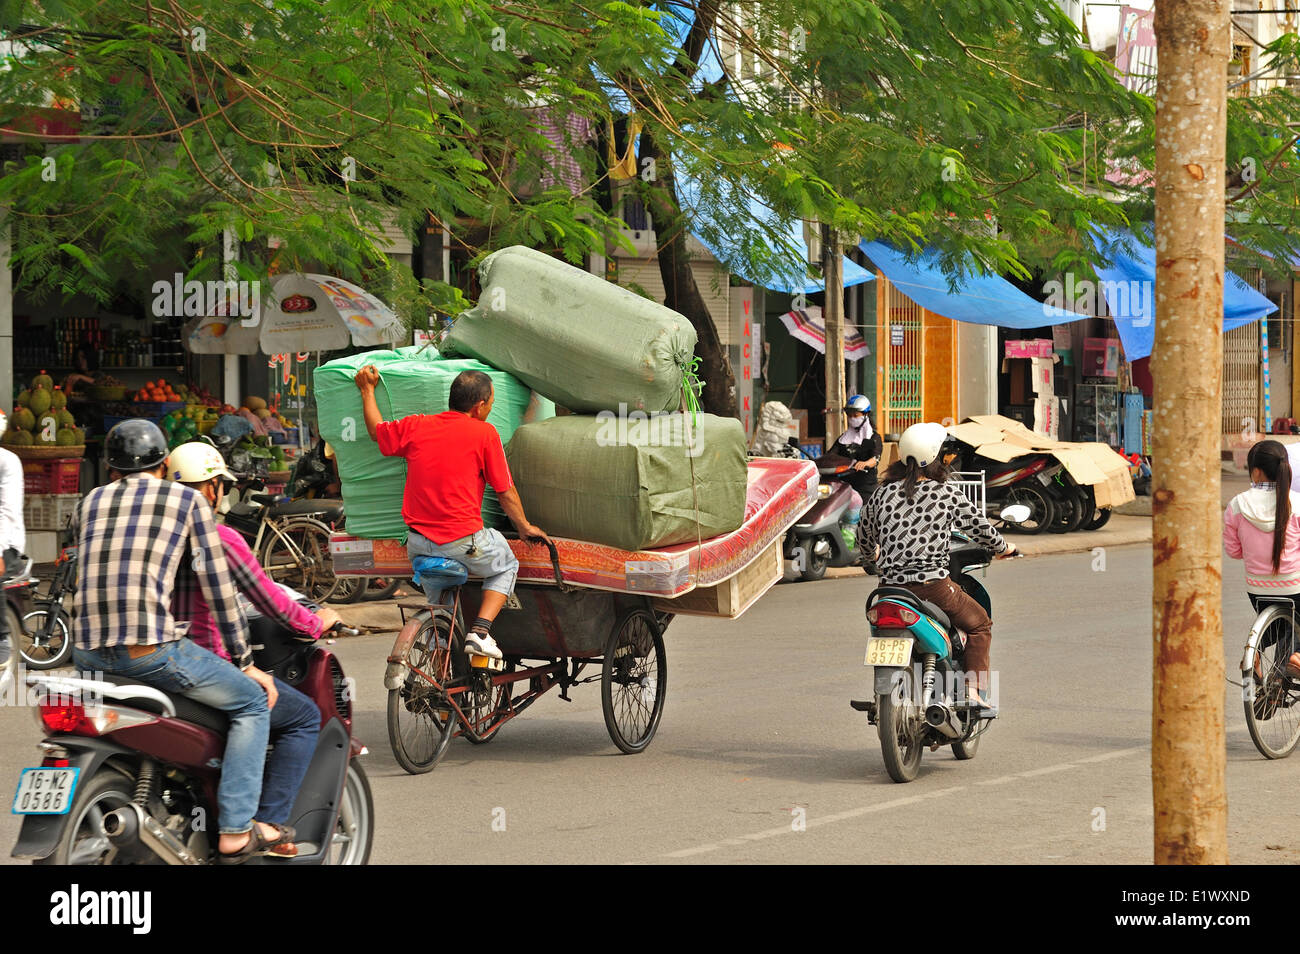 samlo used as delivery vehicle, Haiphong, Vietnam - Stock Image